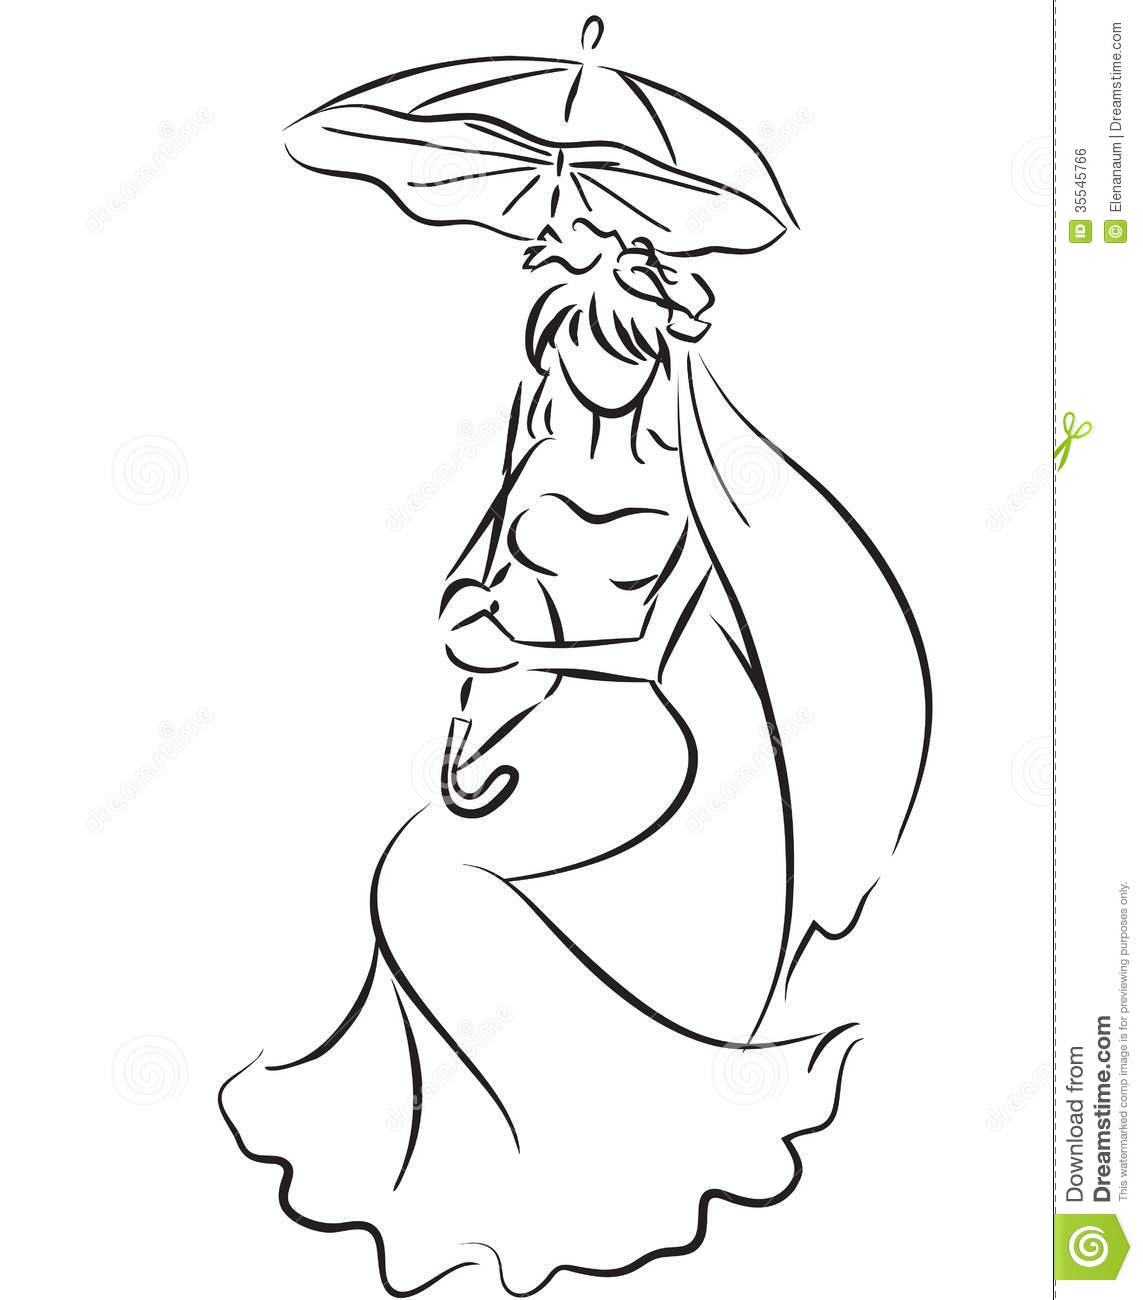 Bride With Umbrella Royalty Free Stock Image